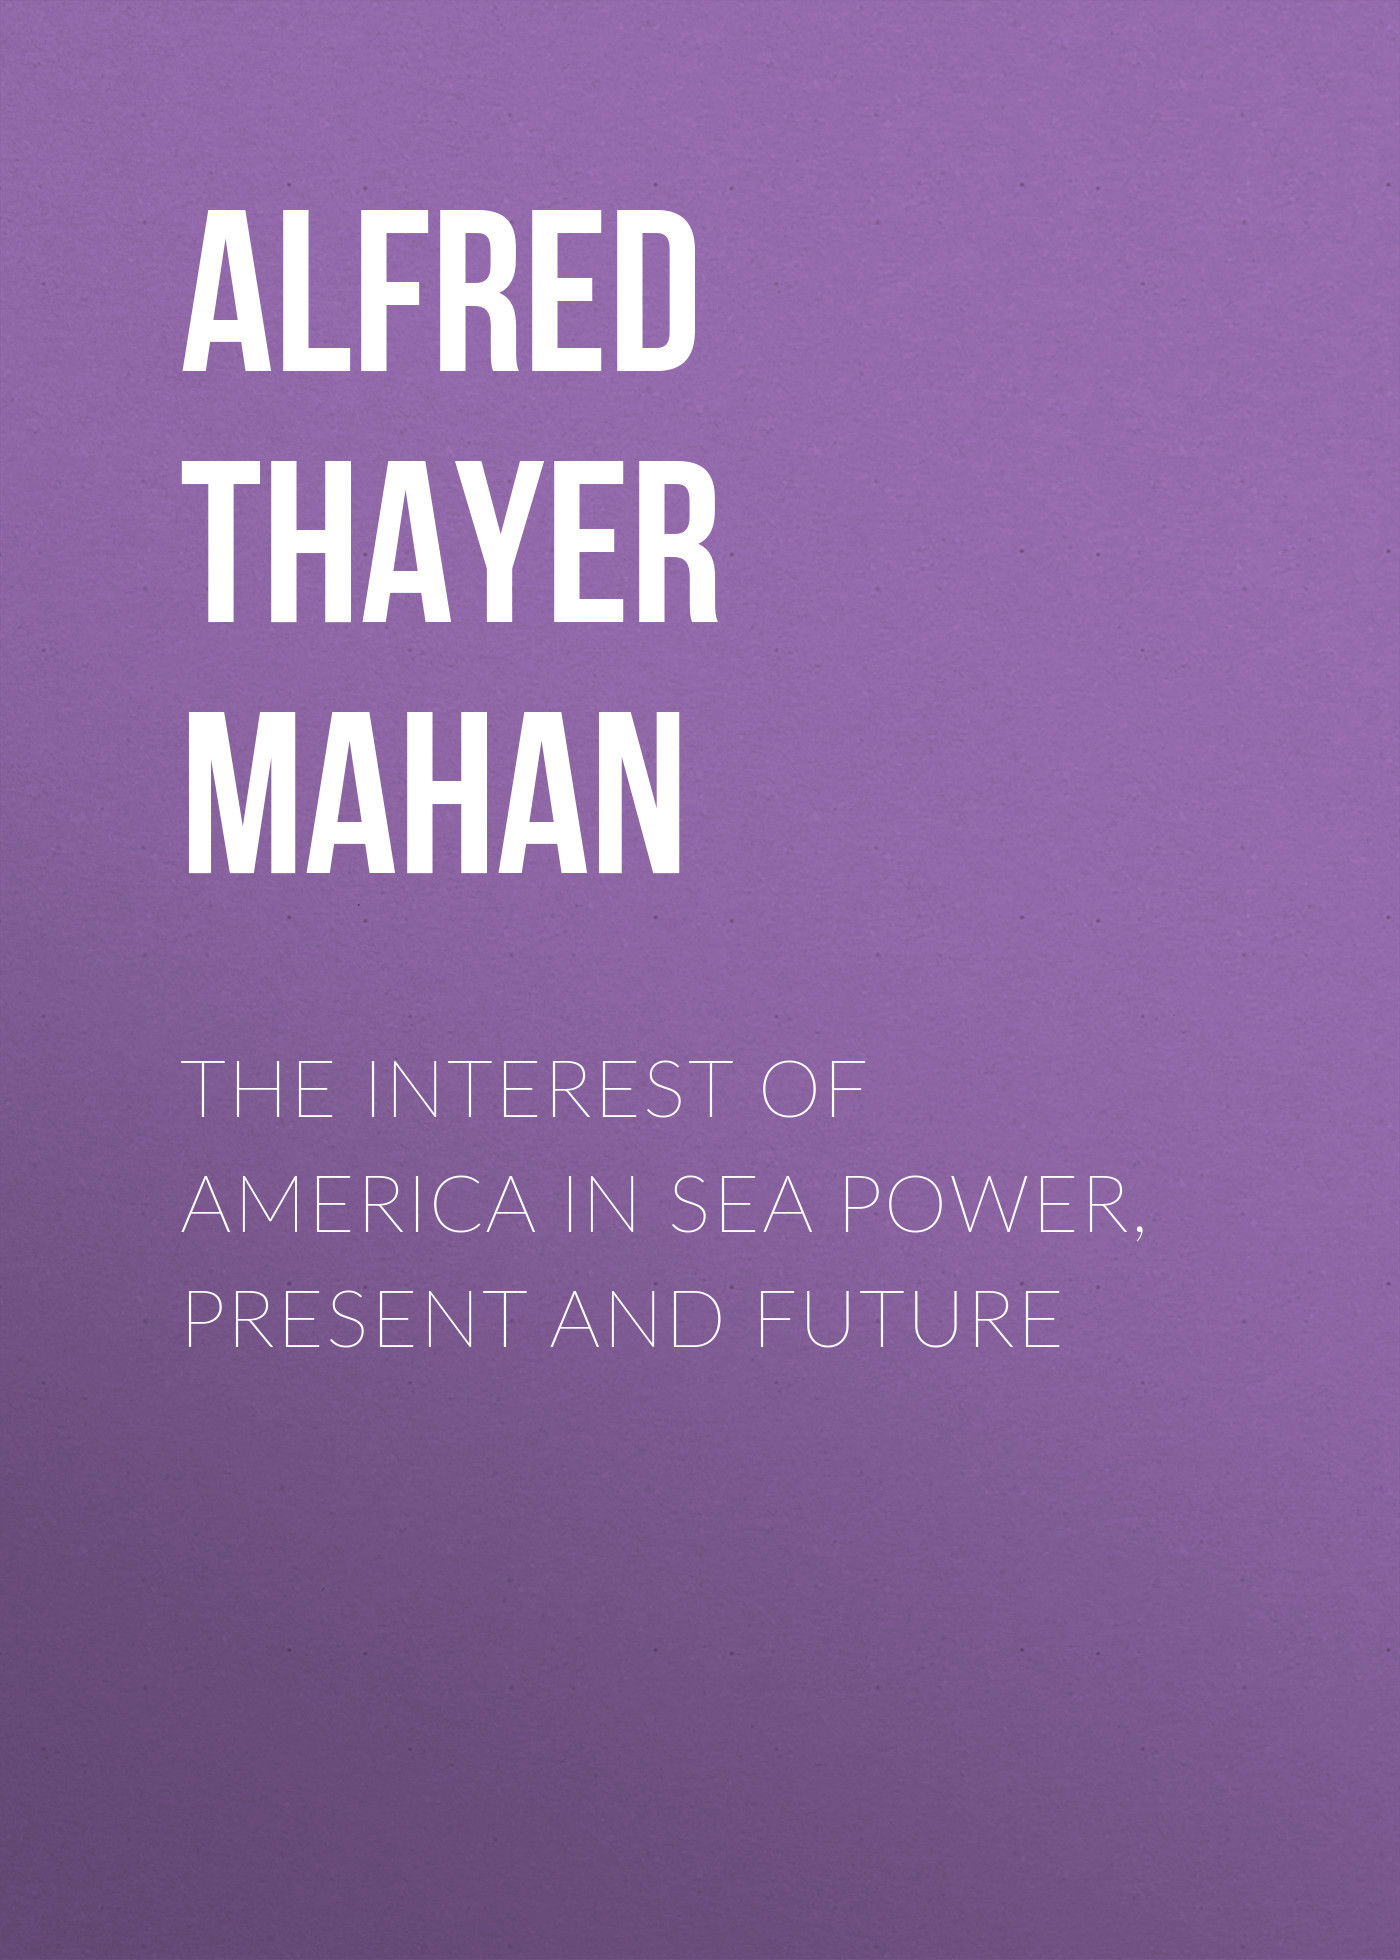 Alfred Thayer Mahan The Interest of America in Sea Power, Present and Future alfred thayer mahan the influence of sea power upon history 1660 1783